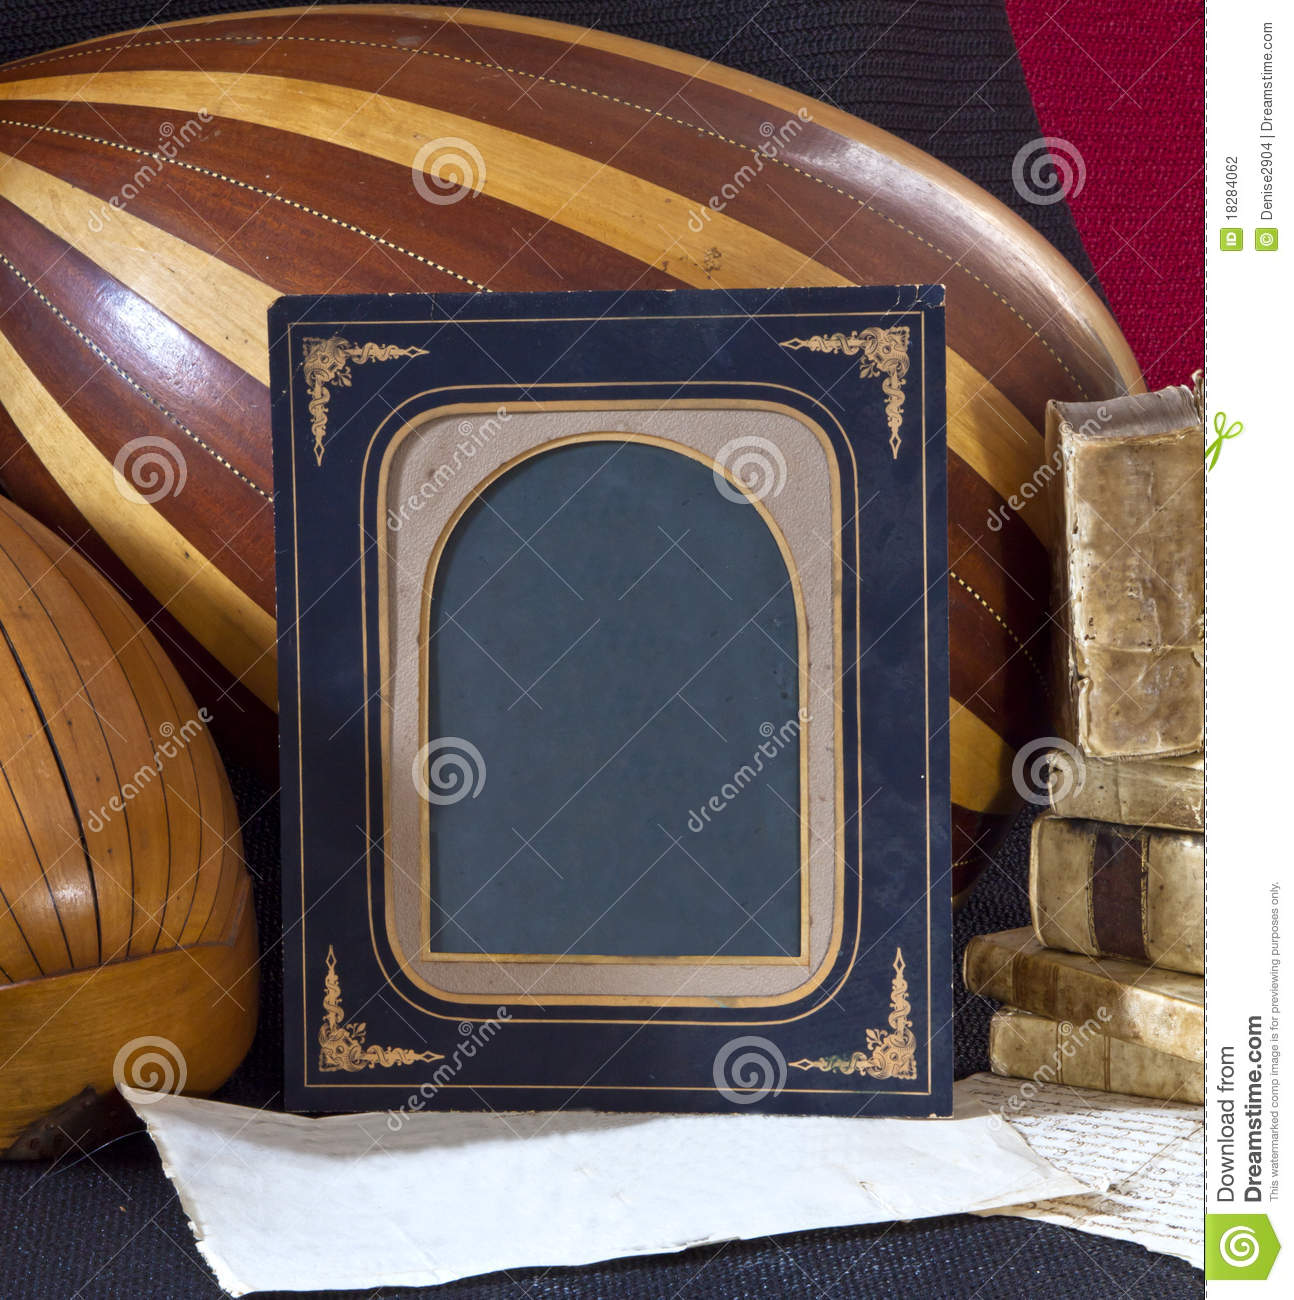 Old objects books paper lute mandolin frame stock photo for Old objects